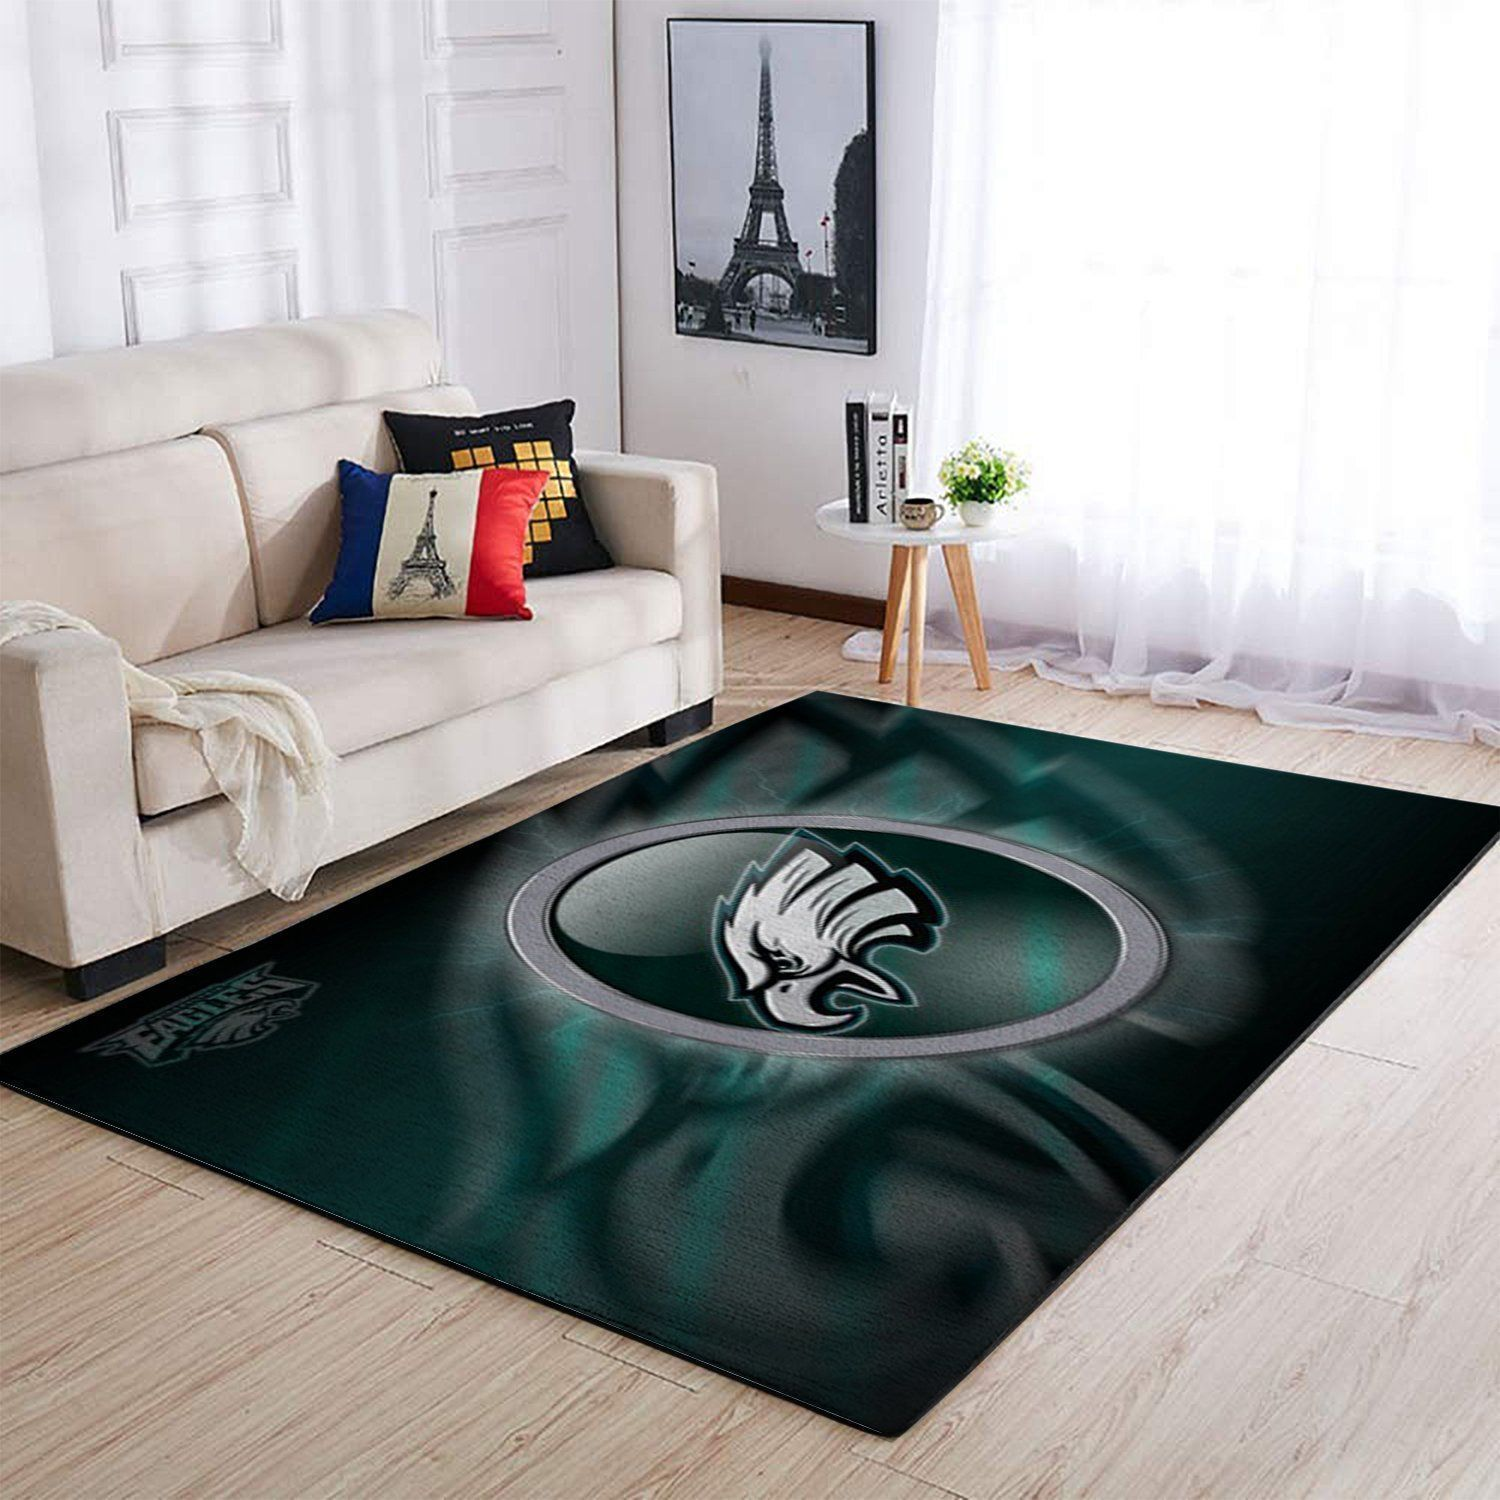 Philadelphia Eagles Area Rugs NFL Football Living Room Carpet Team Logo Custom Floor Home Decor 191007